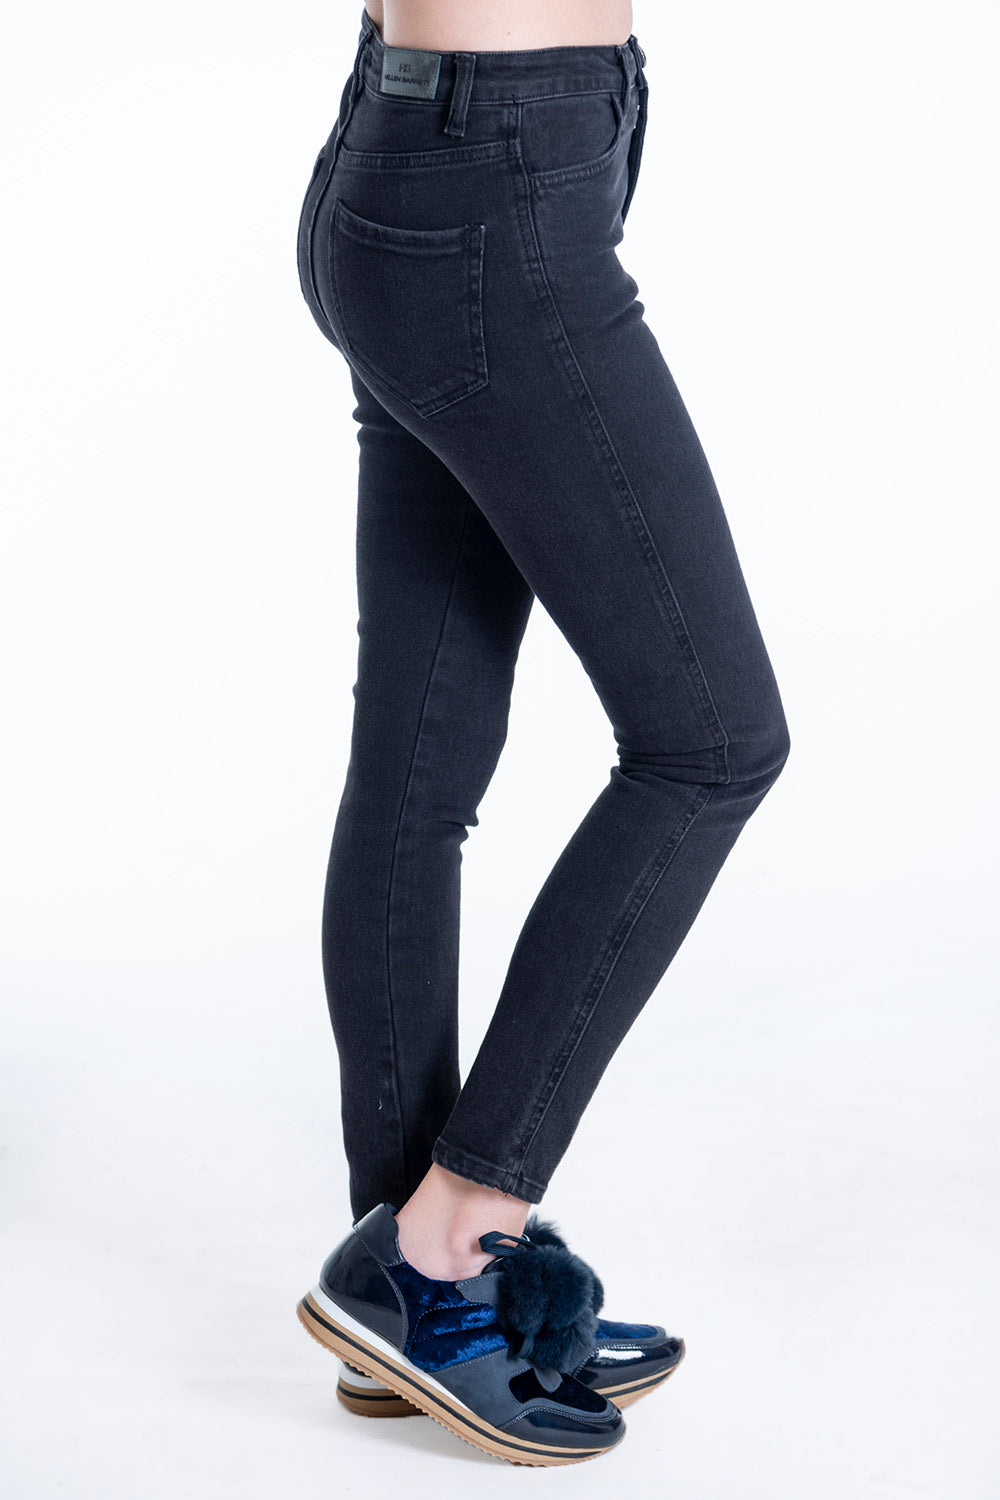 Hellen Barret black skinny jeans with stud button